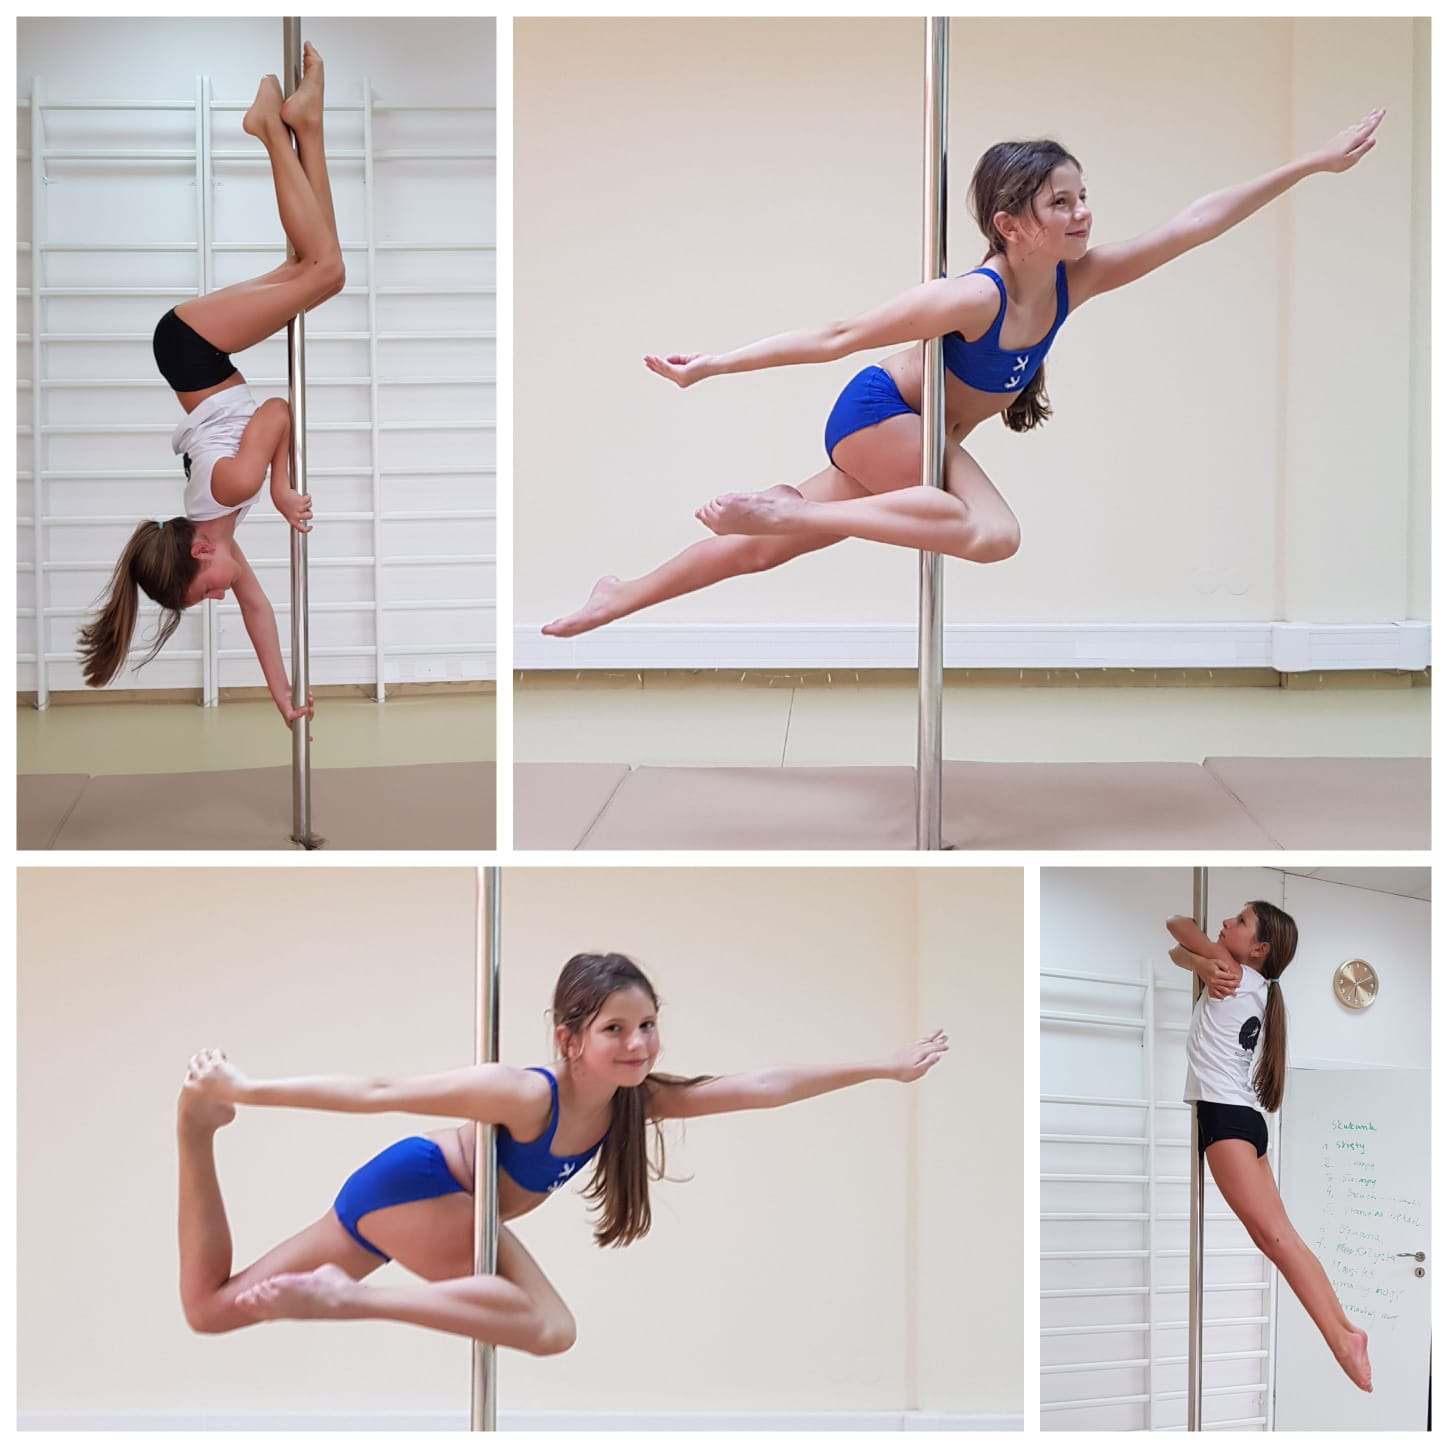 Aniela - pole dance kids 😊 💕